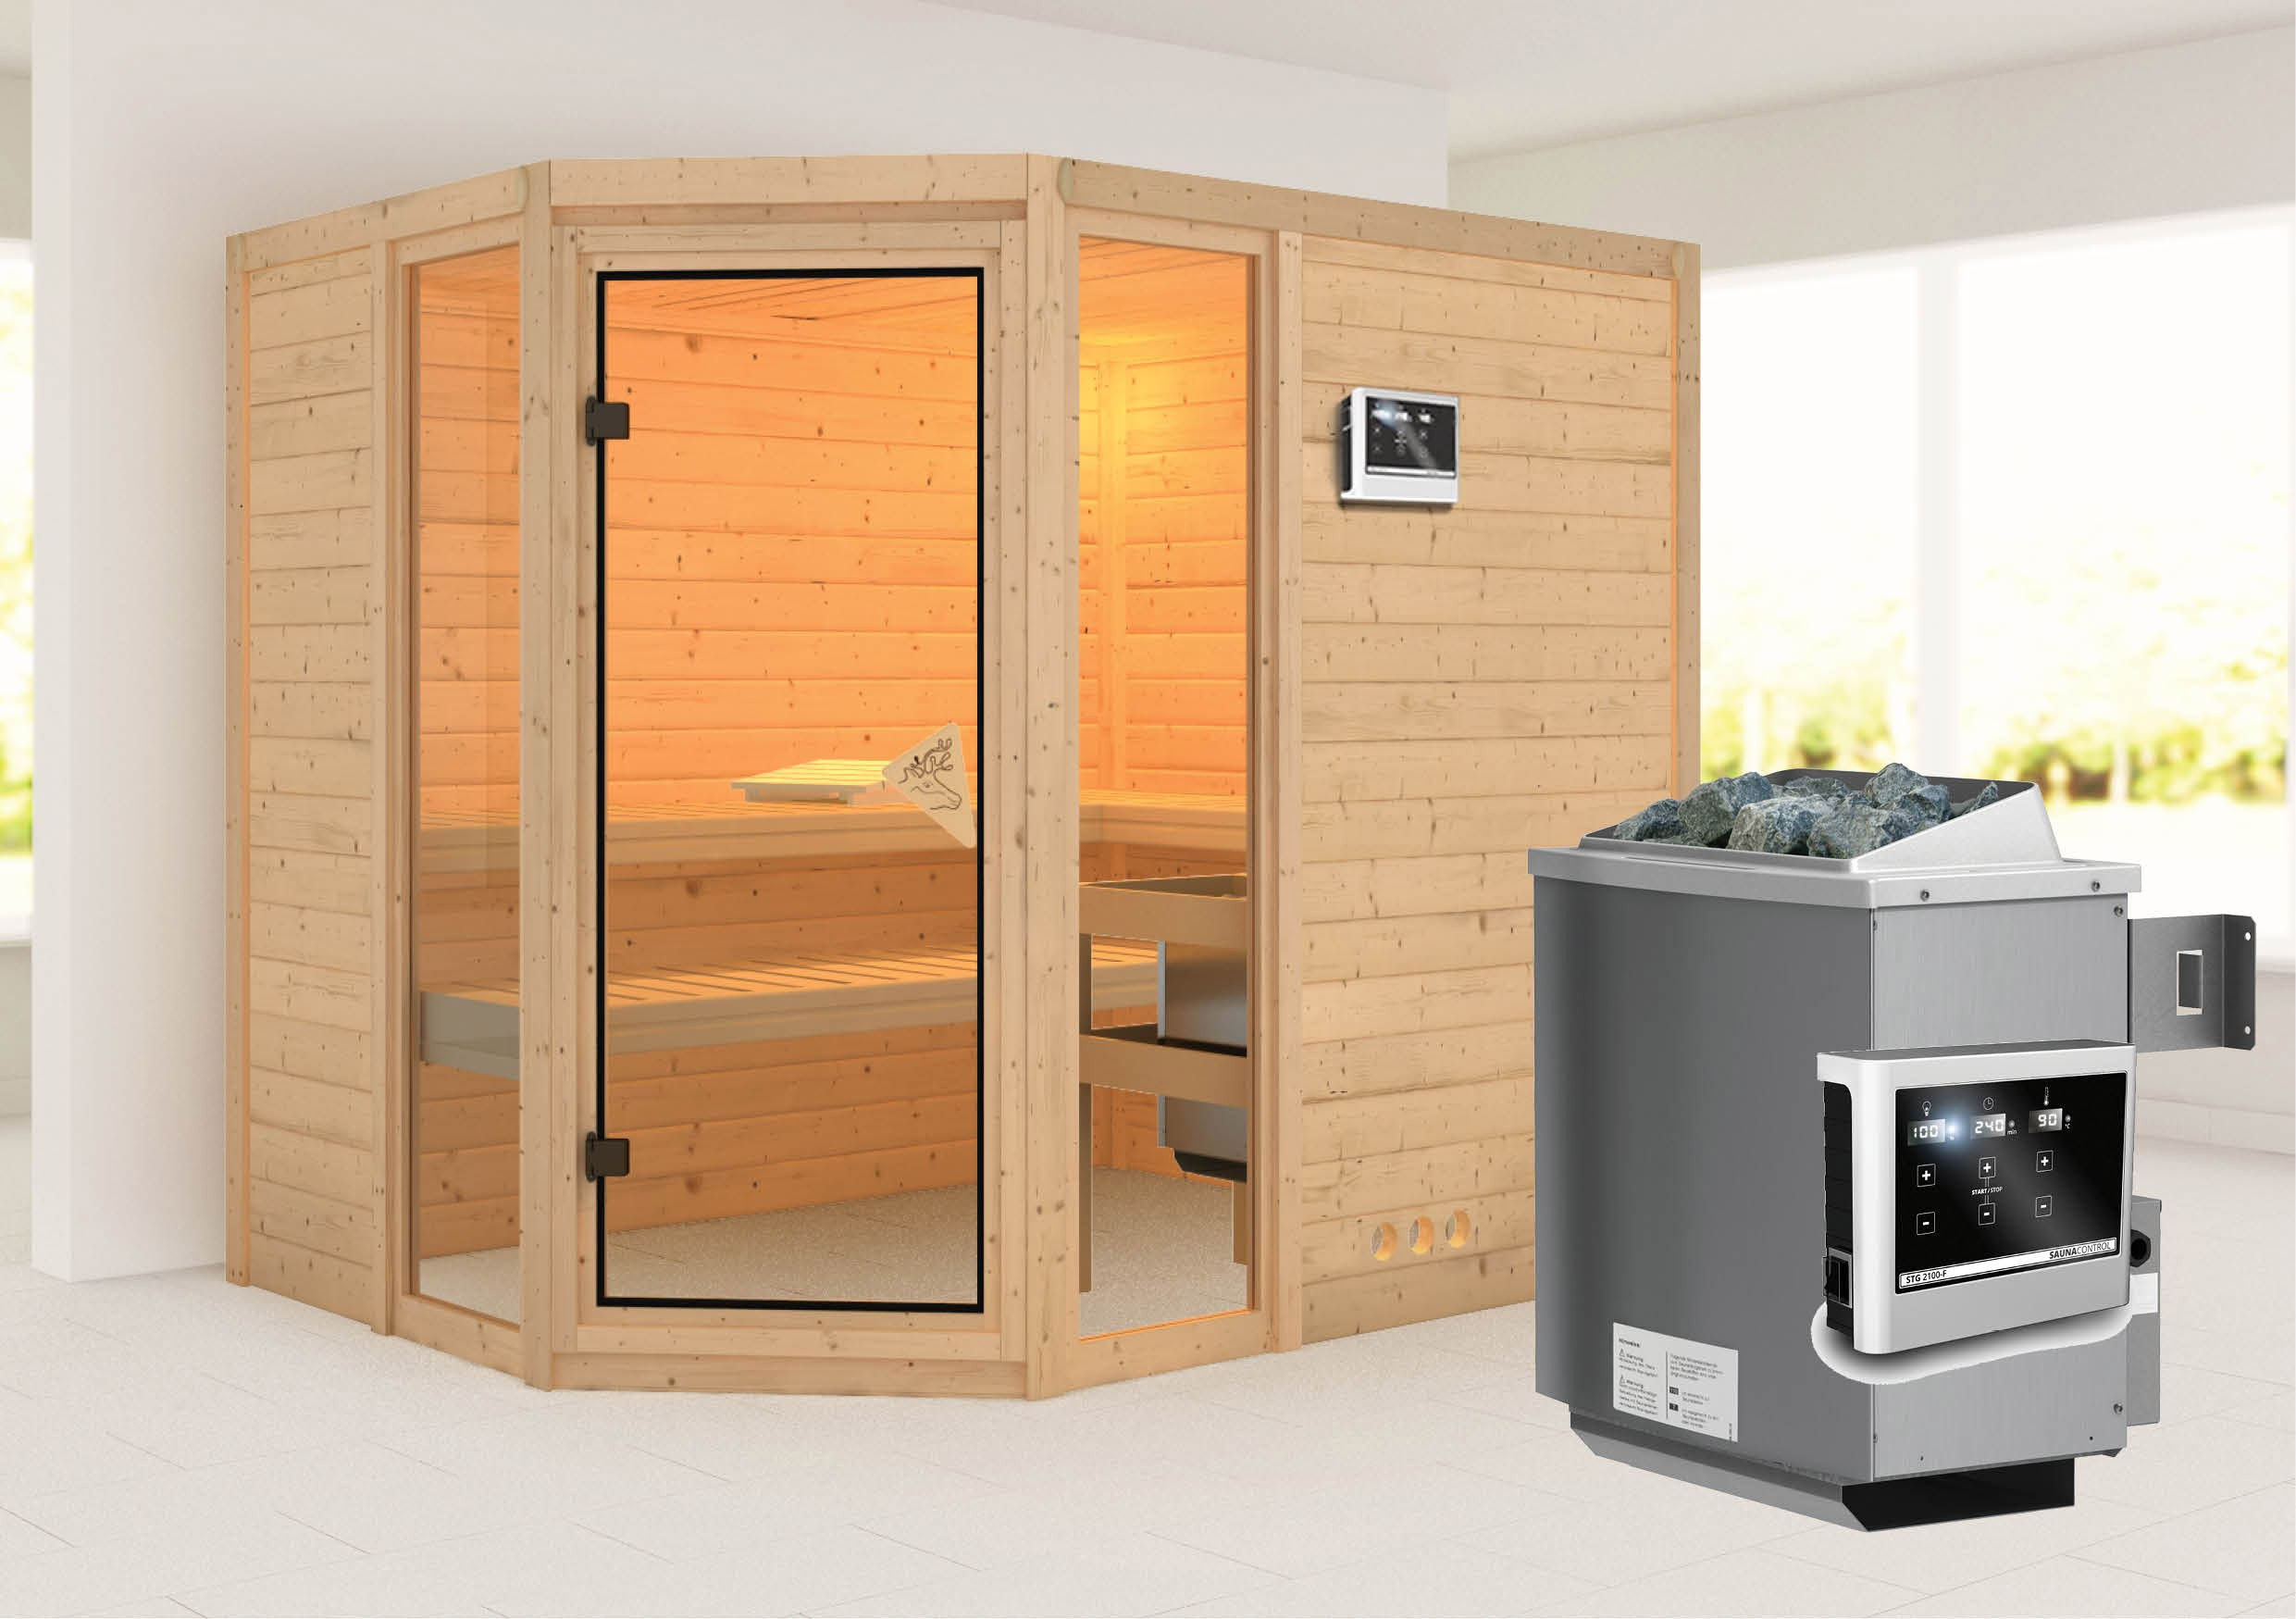 karibu sauna sinai3 40mm mit ofen 9kw extern classic t r bei. Black Bedroom Furniture Sets. Home Design Ideas